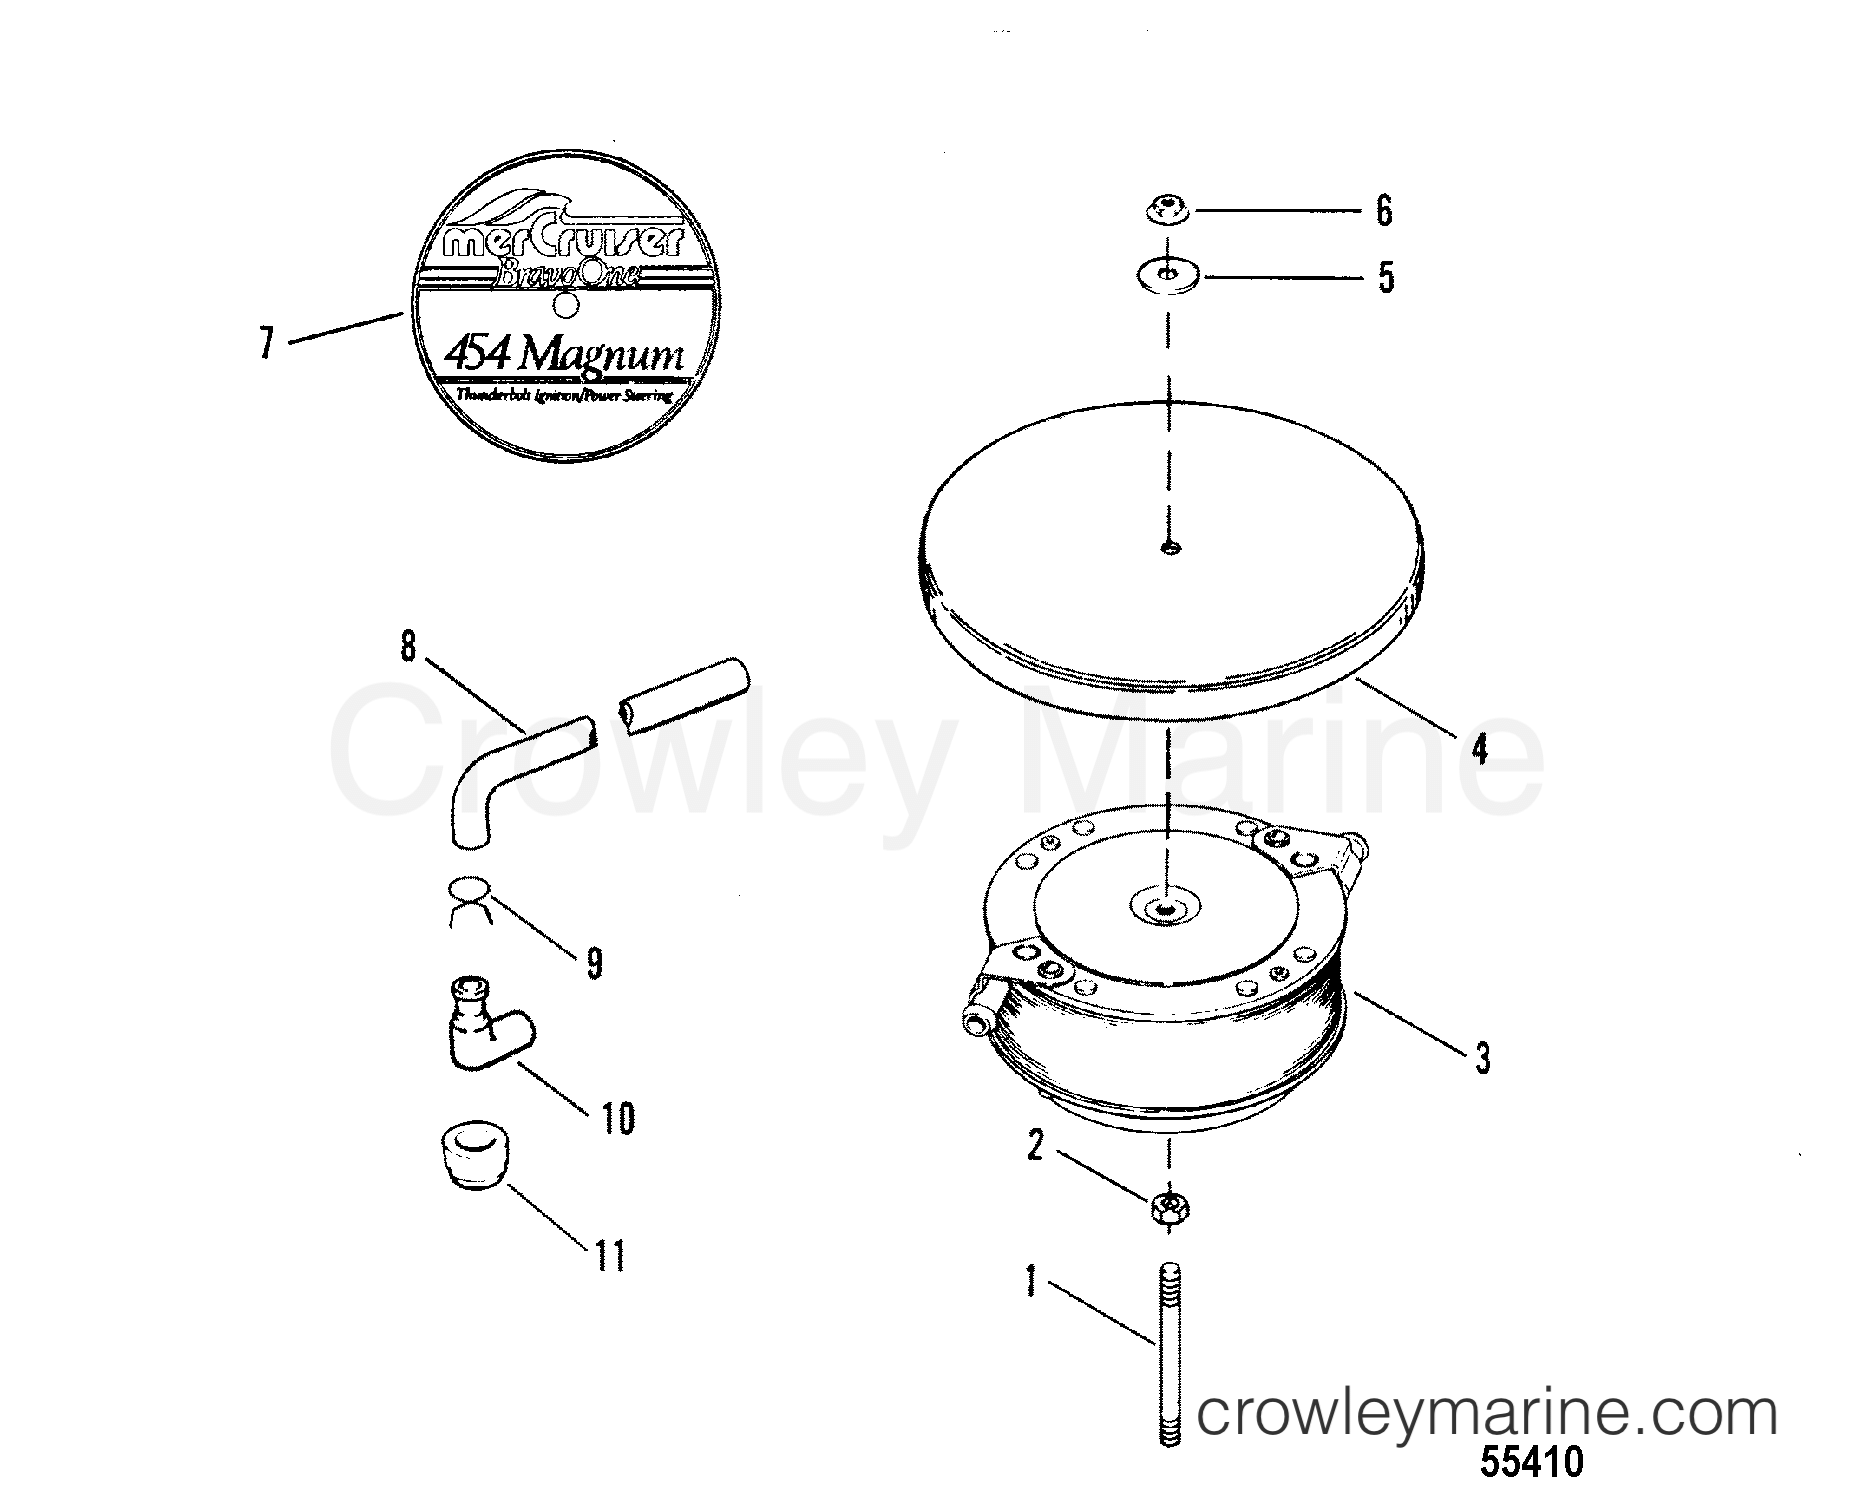 Flame Arrestor Old Design